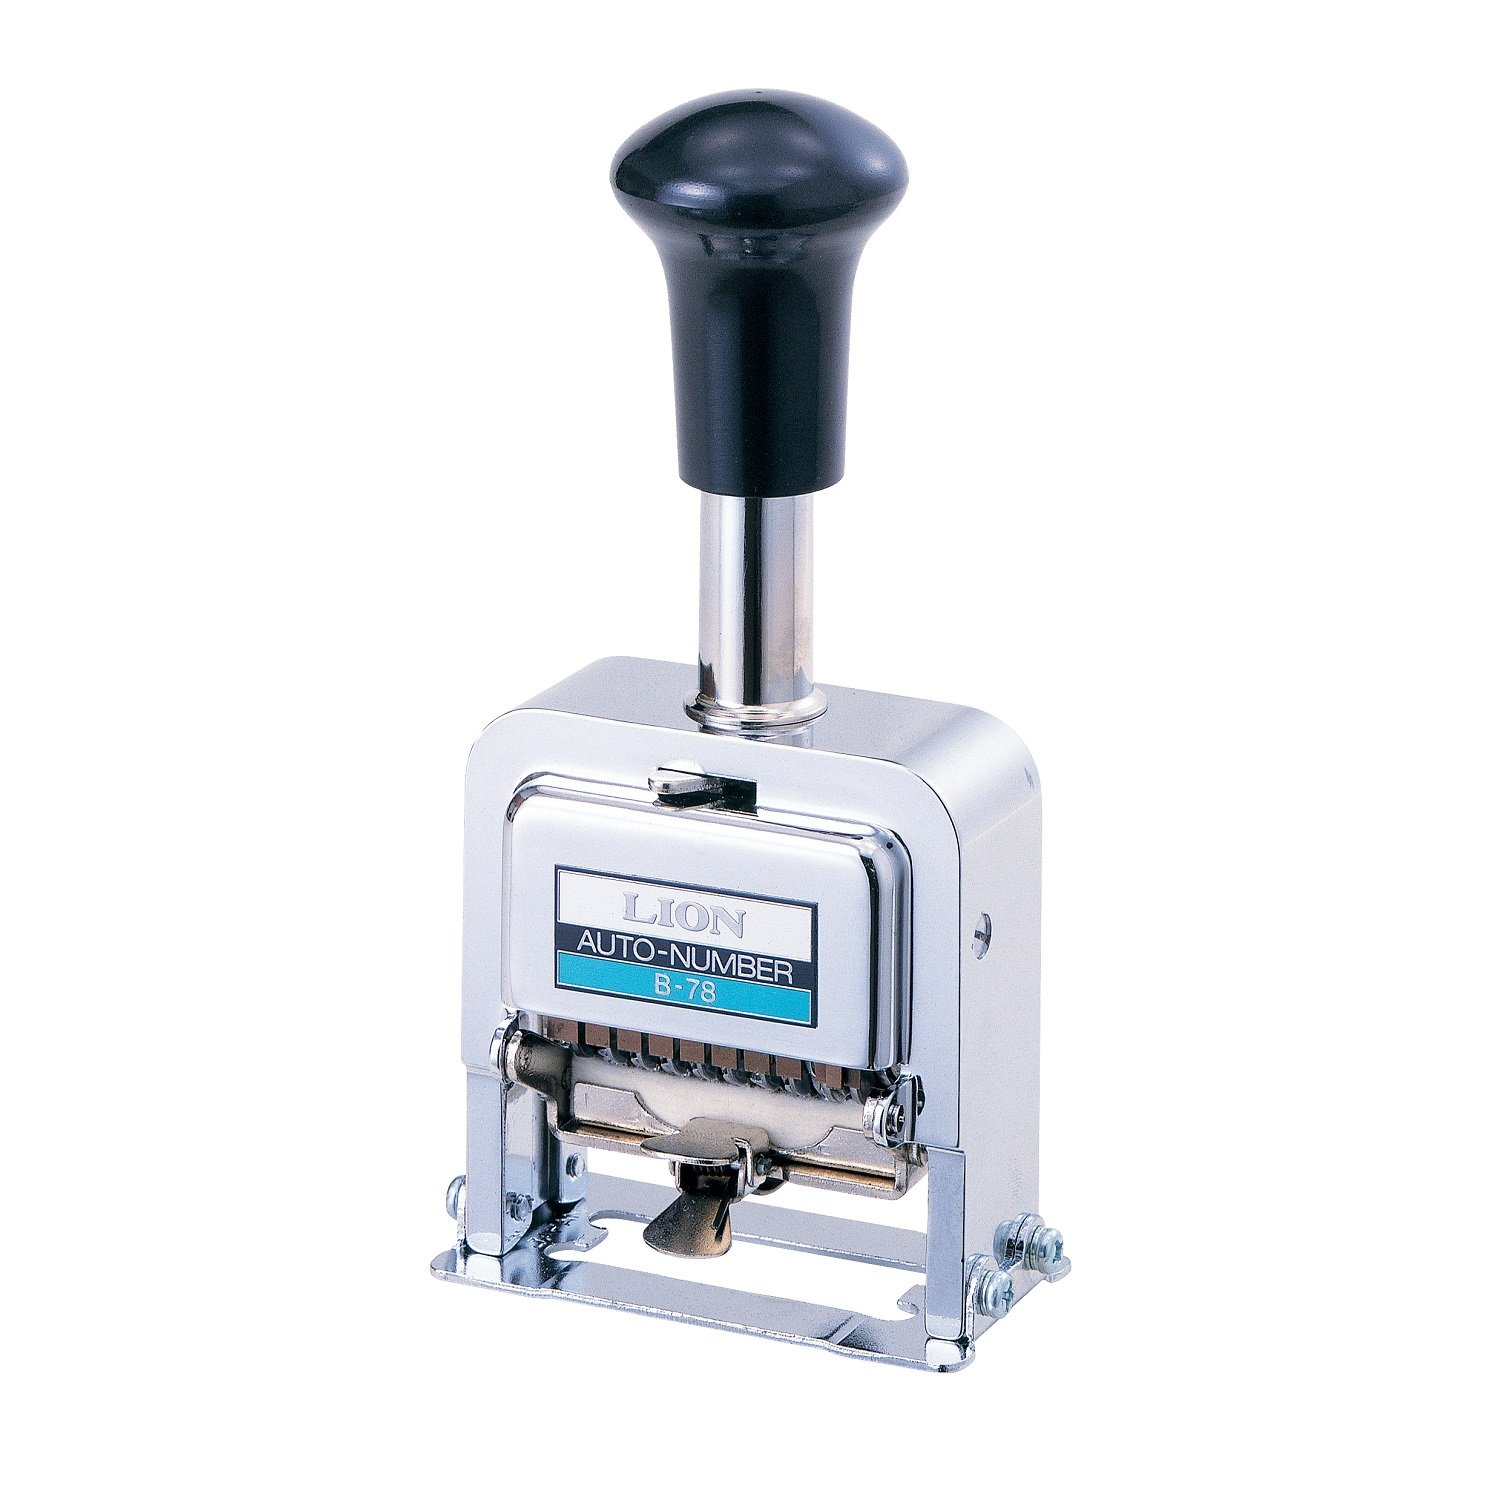 Lion Pro-Line Heavy-Duty Automatic Numbering Machine, 8-Wheel, 1 Numbering Machine (B-78)